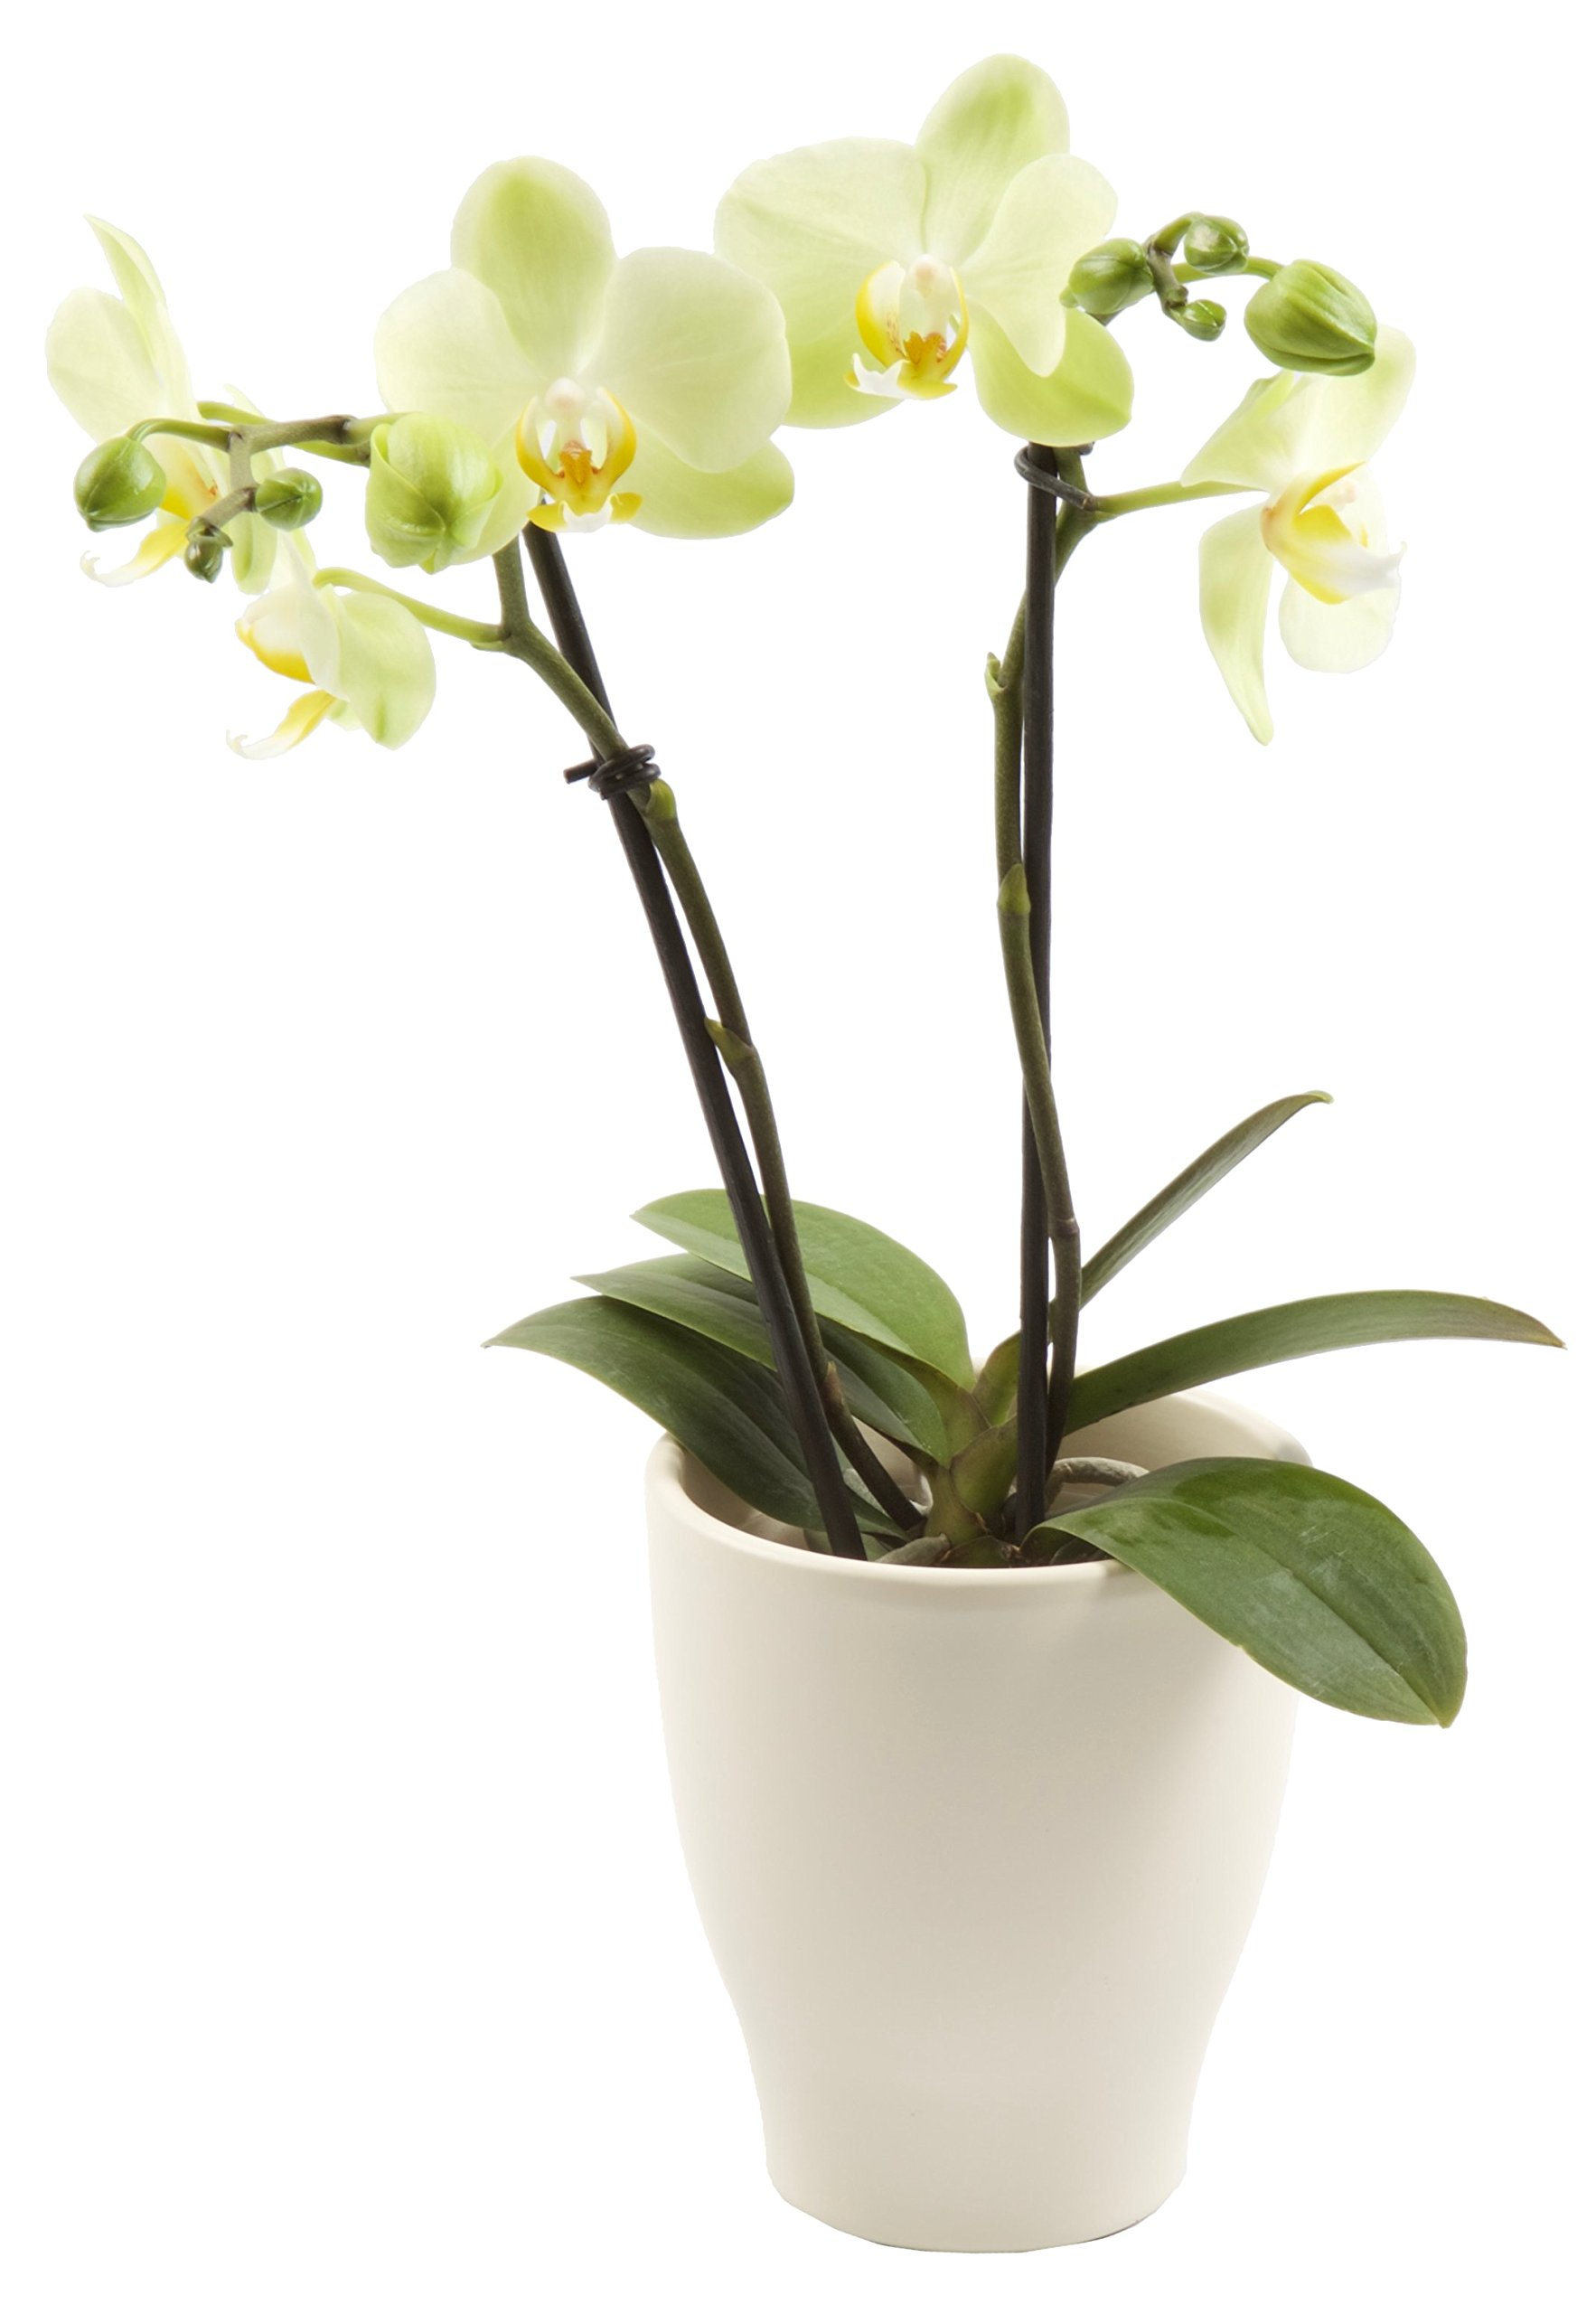 Color Orchids Live Blooming Double Stem Phalaenopsis Orchid Plant in Ceramic Pot, 15''-20'' Tall, Yellow Blooms